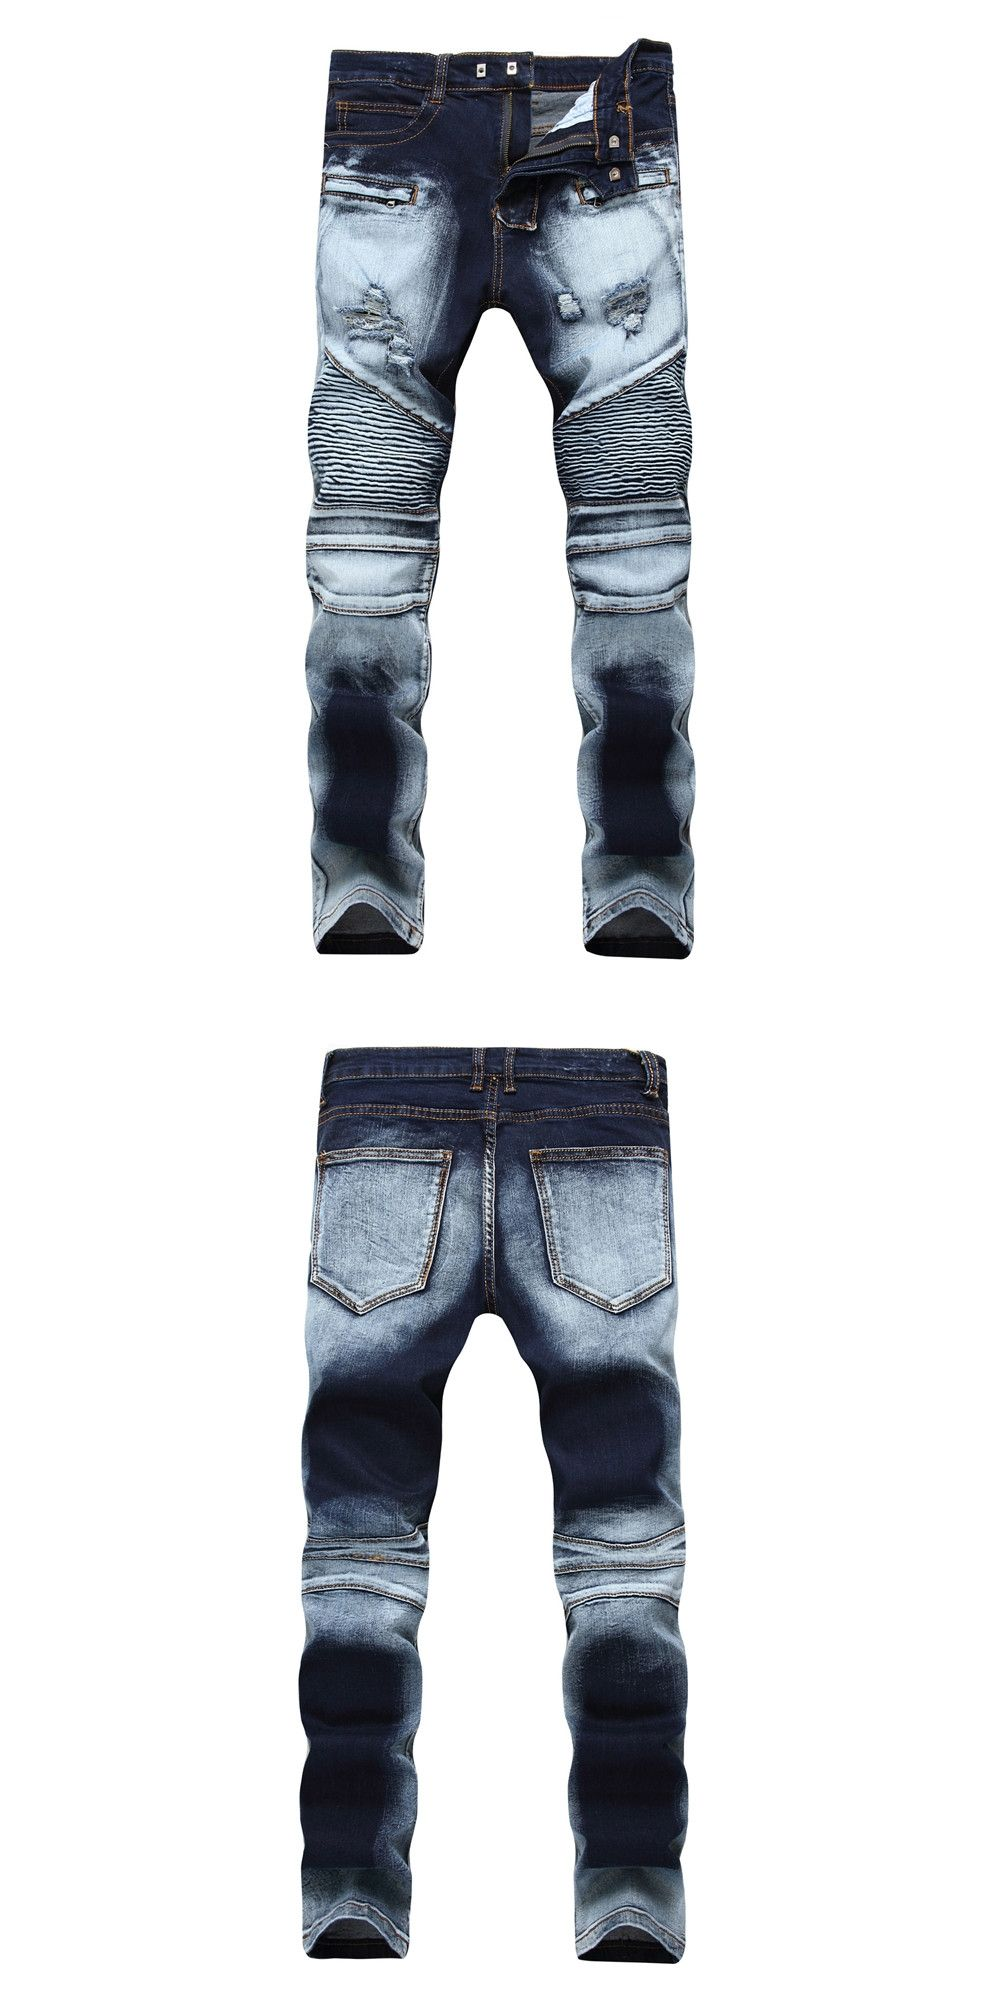 2018 New Dropshipping Ripped Biker Jeans Men Skinny Elastic Pleated Denim  Jeans Stretch Motorcycle Denim Pants Plus Size 6c646af1b533